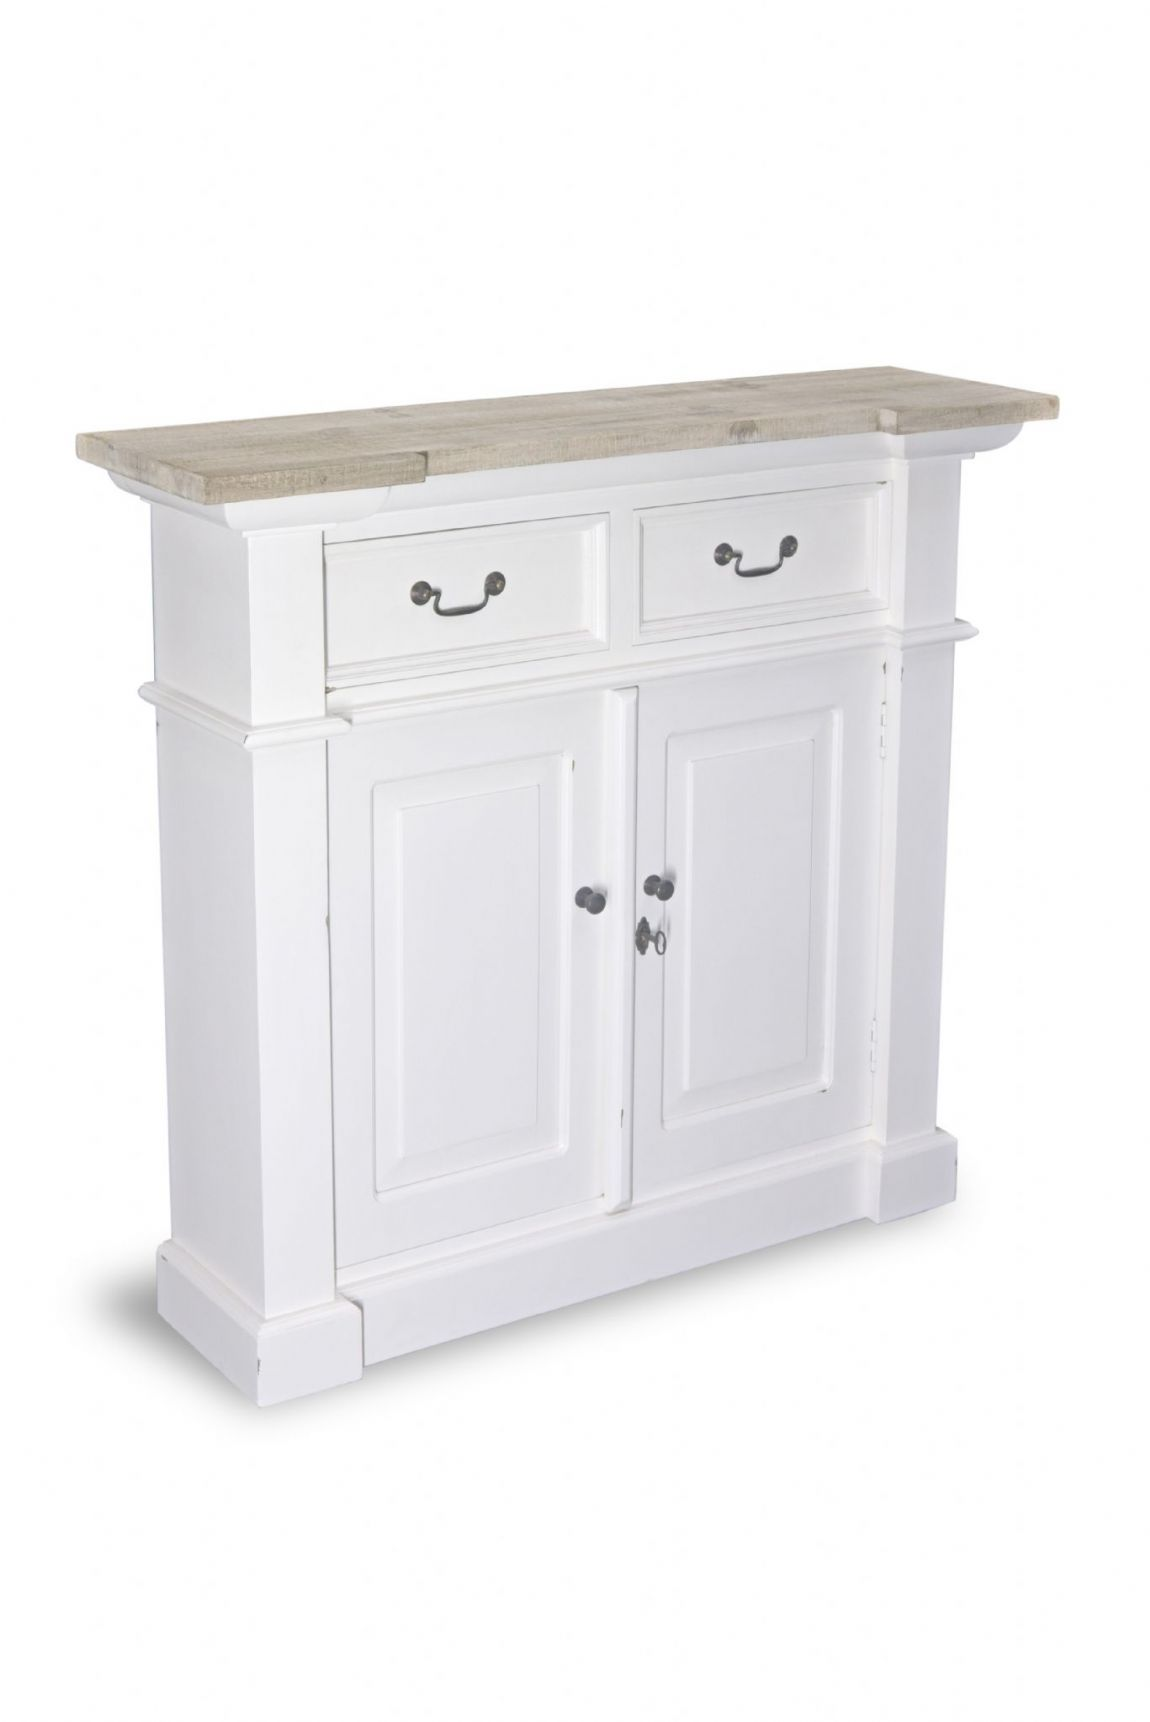 Fowey Slim Hall Cupboard - White